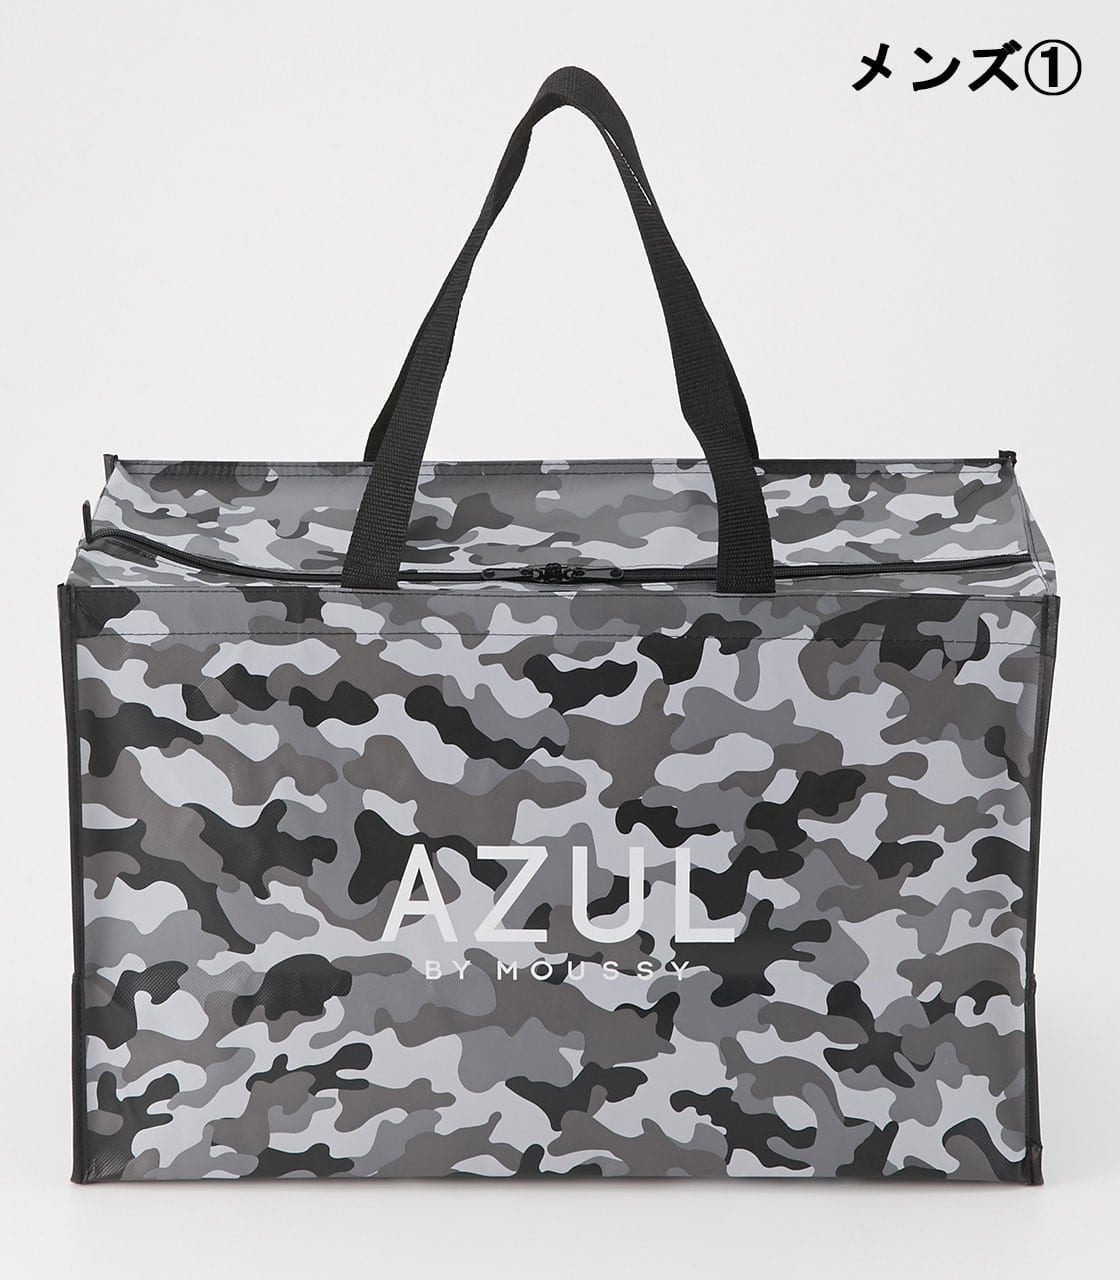 【AZUL BY MOUSSY】2018 NEW YEAR BAG MN10000 詳細画像 CLR 1